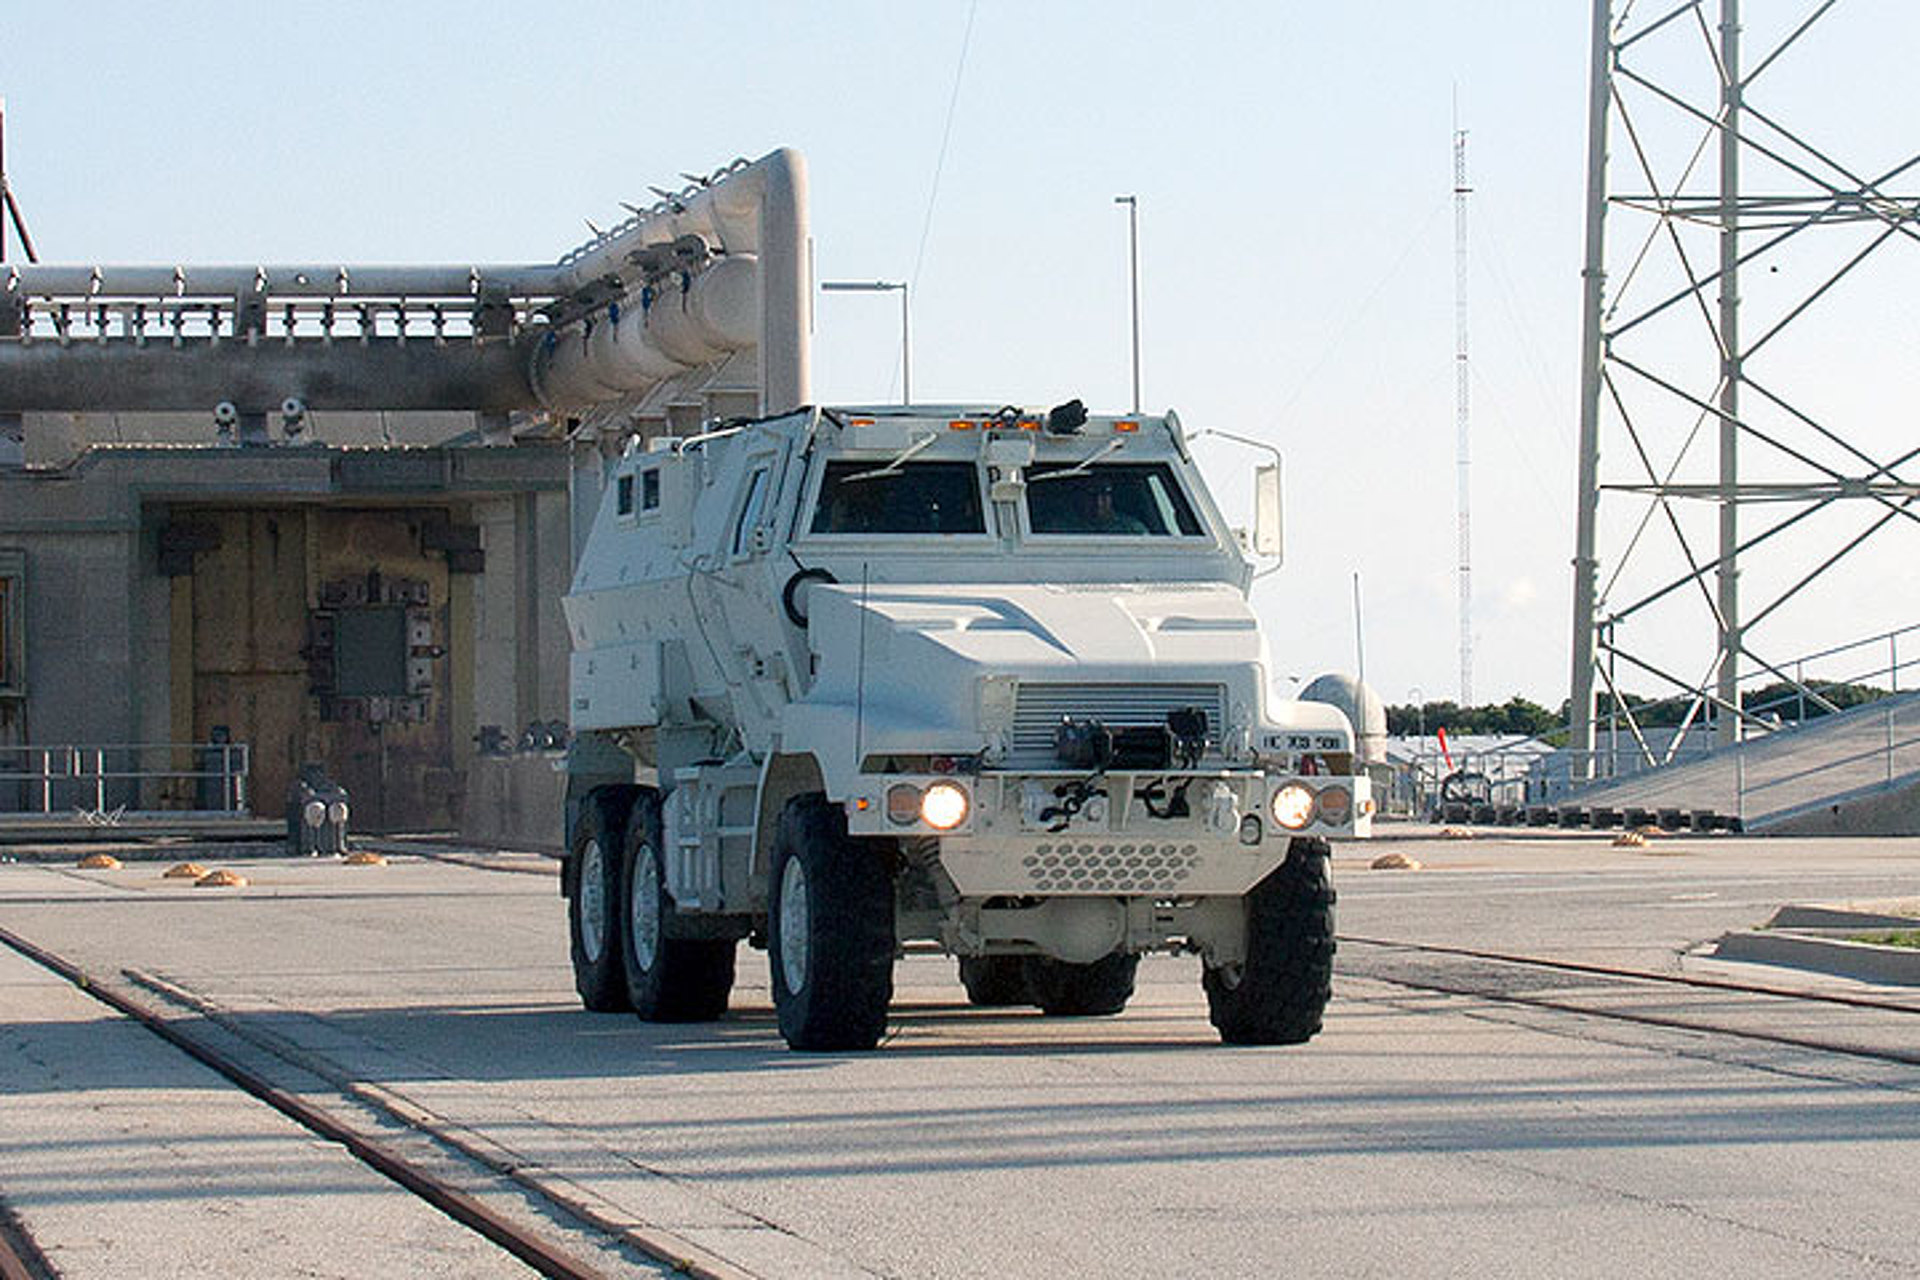 NASA Just Added an Armored Military Vehicle to Its Fleet